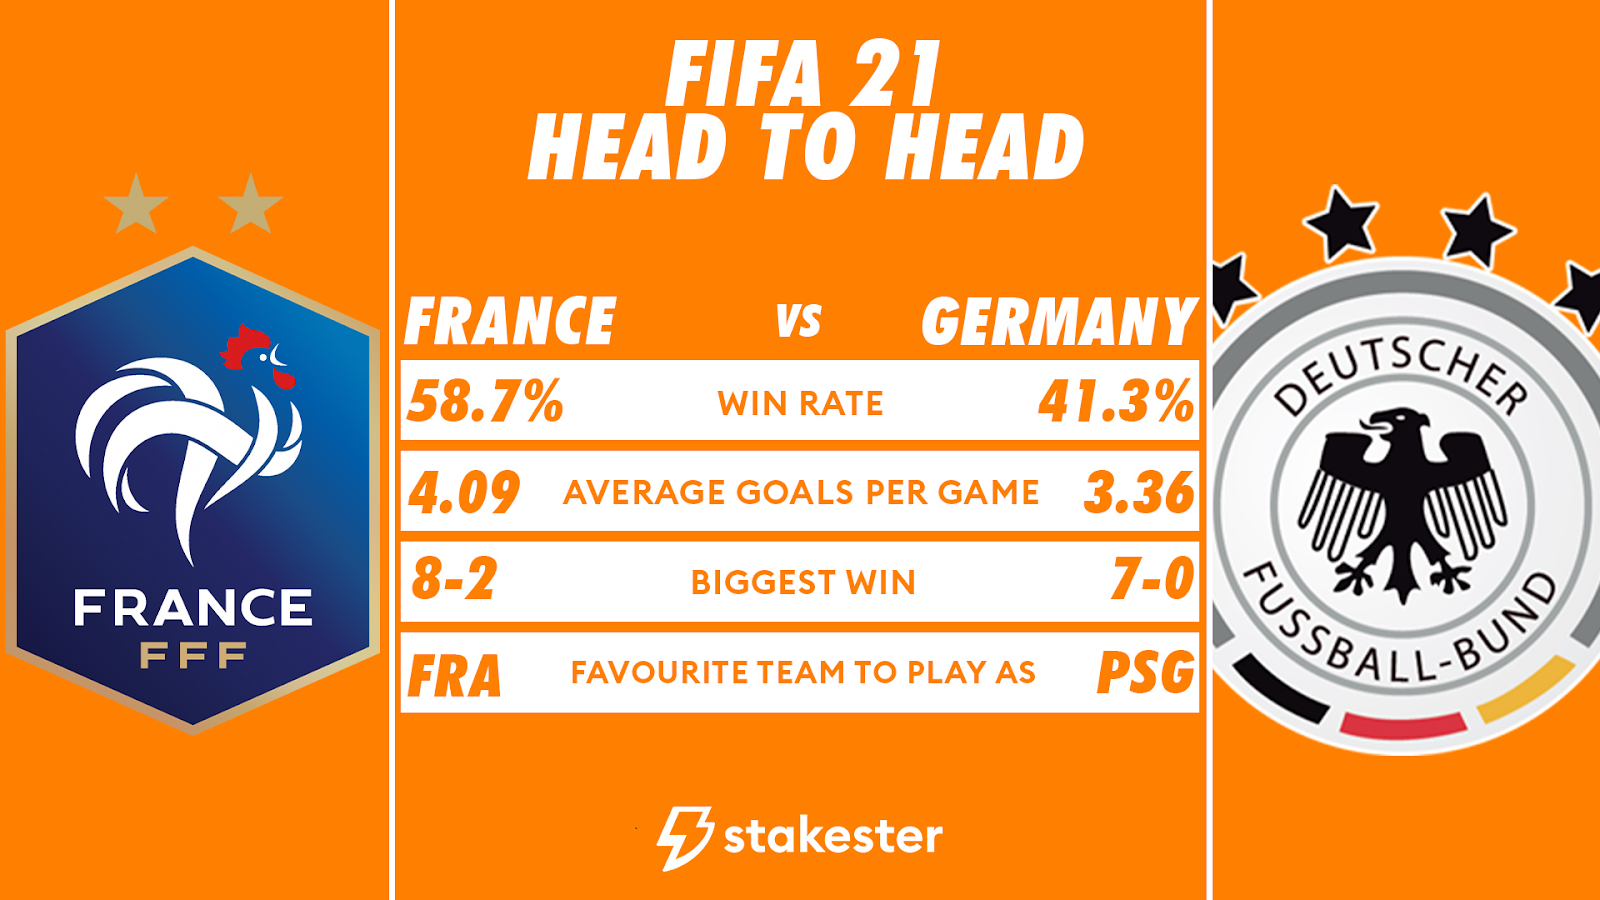 Stakester data for France vs Germany games in which France won 58.7% of games.